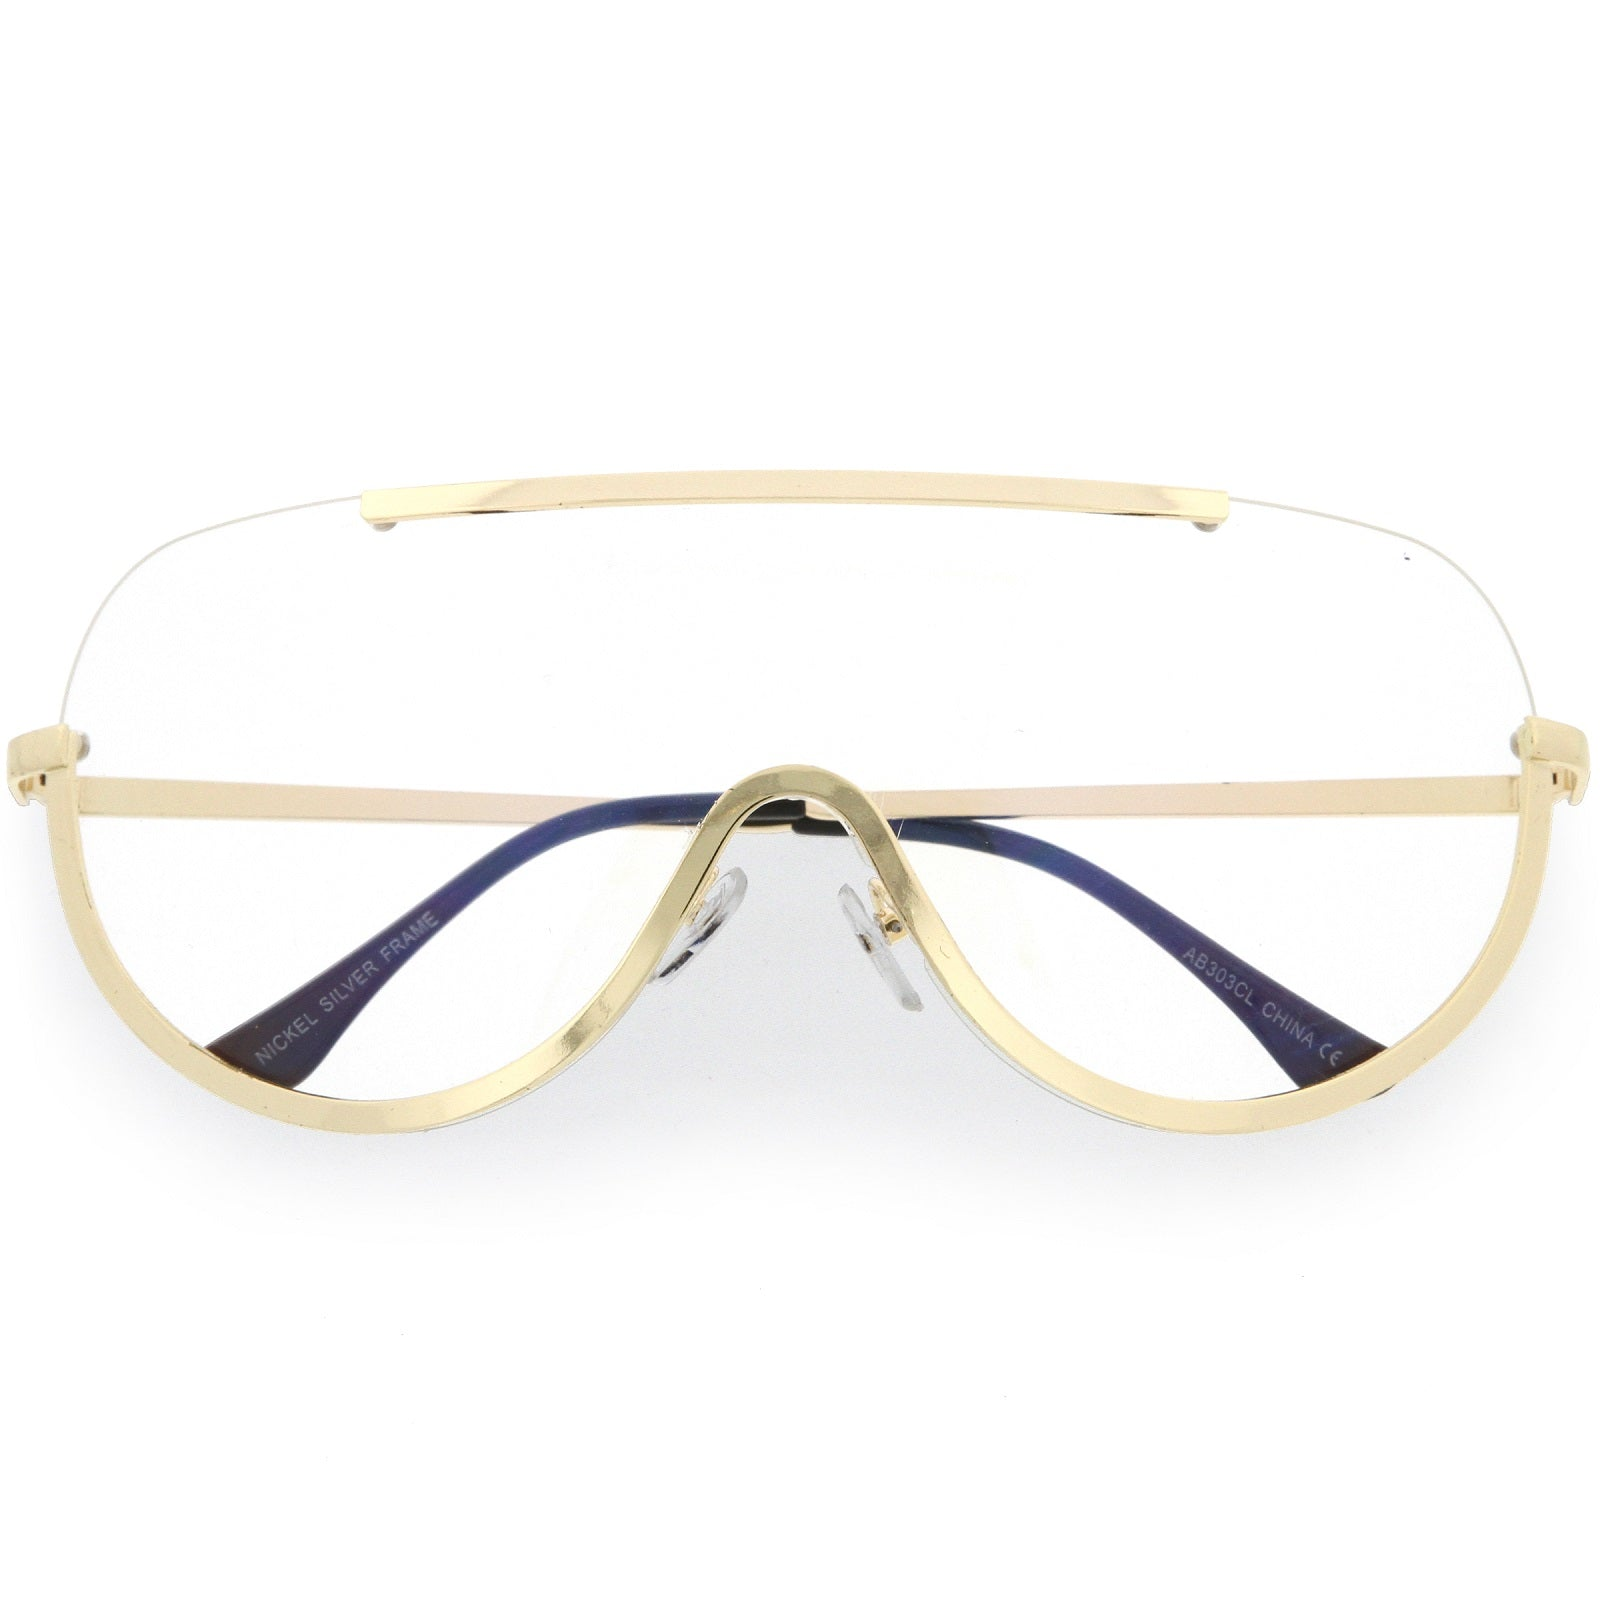 e64757f81f True Vintage Horn Rimmed Semi-Rimless Sunglasses Square Mirrored Lens 48mm